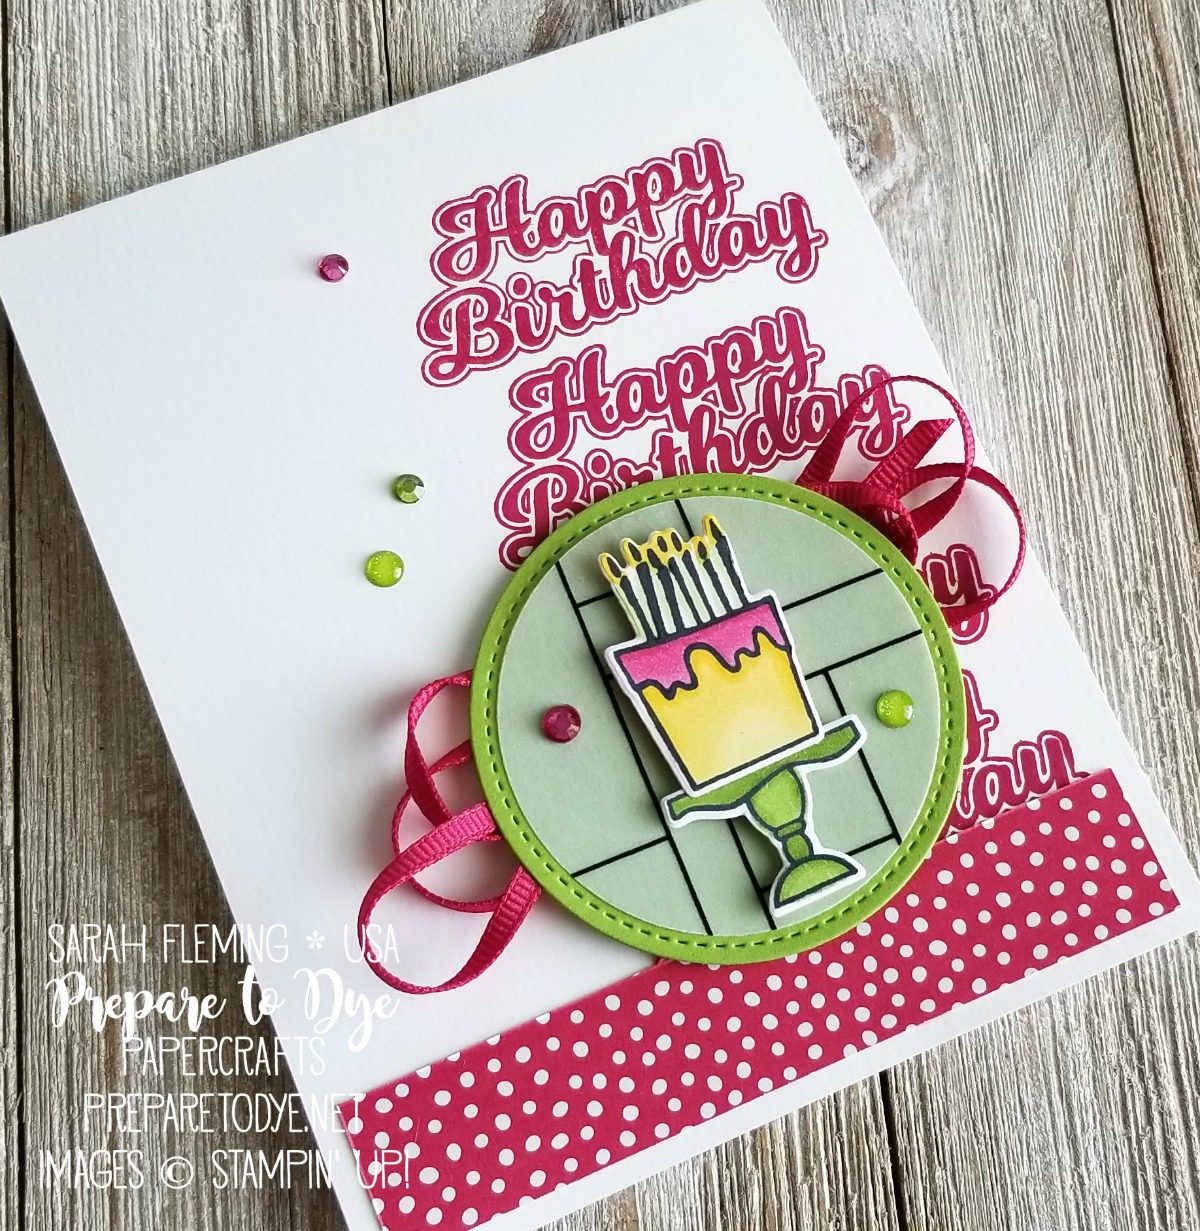 Stampin' Up! handmade birthday card with Blow Out the Candles bundle, Candles & Confetti framelits, Stitched Shapes framelits, Layering Circles framelits, In Color paper stack, coloring with Stampin' Blends alcohol markers, Graceful Glass Vellum - Sarah Fleming - Prepare to Dye Papercrafts